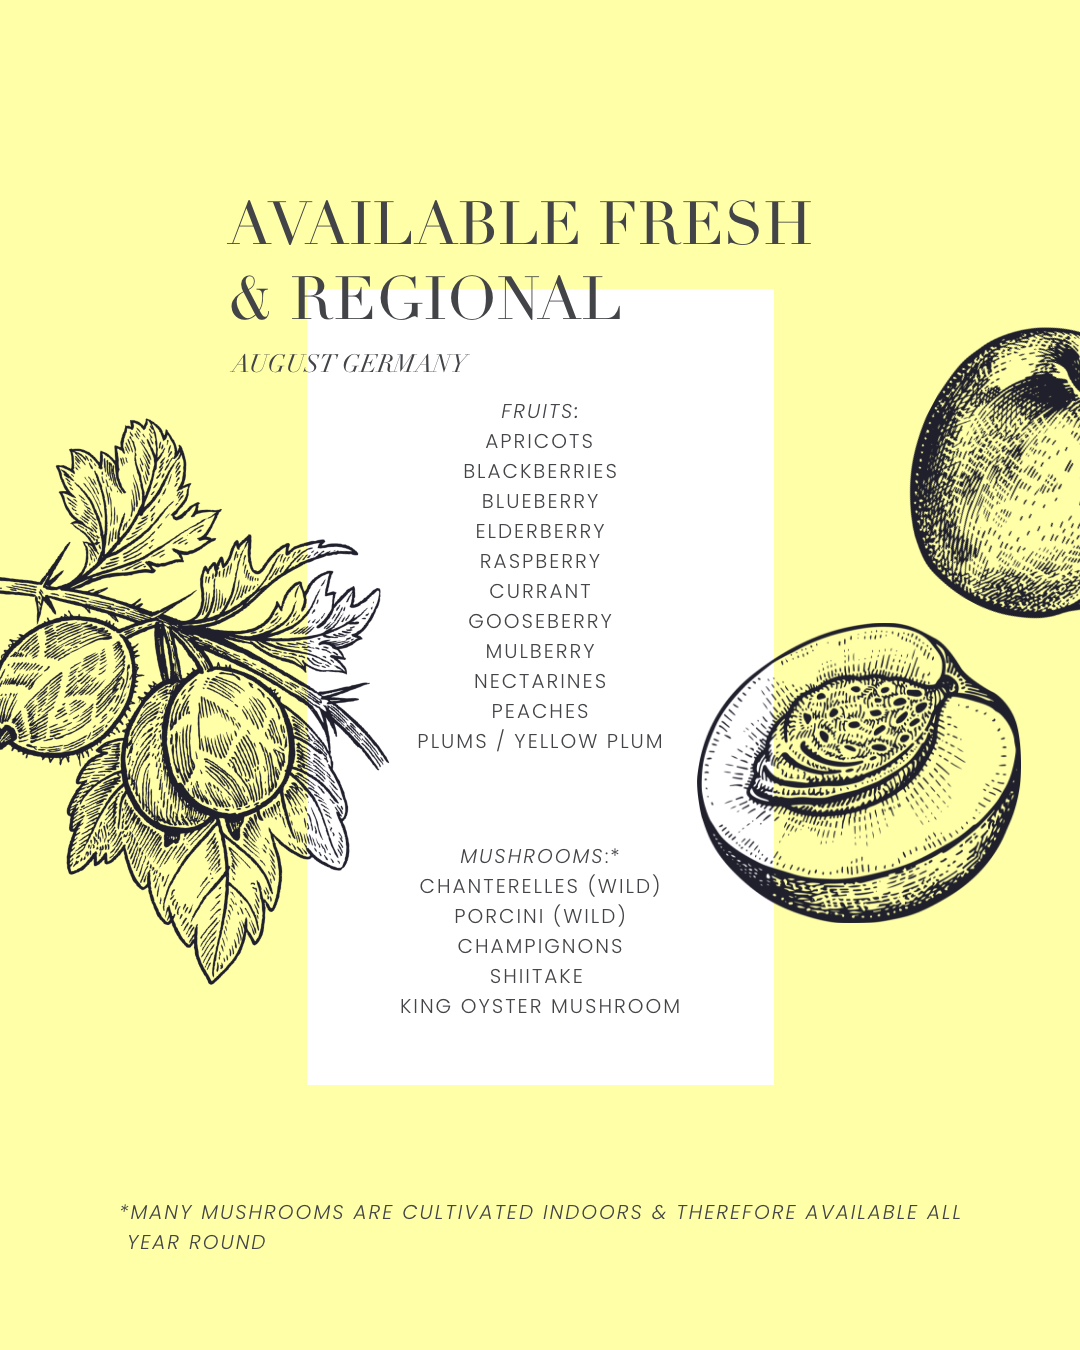 produce overview - available fresh and regional fruits and mushrooms in august